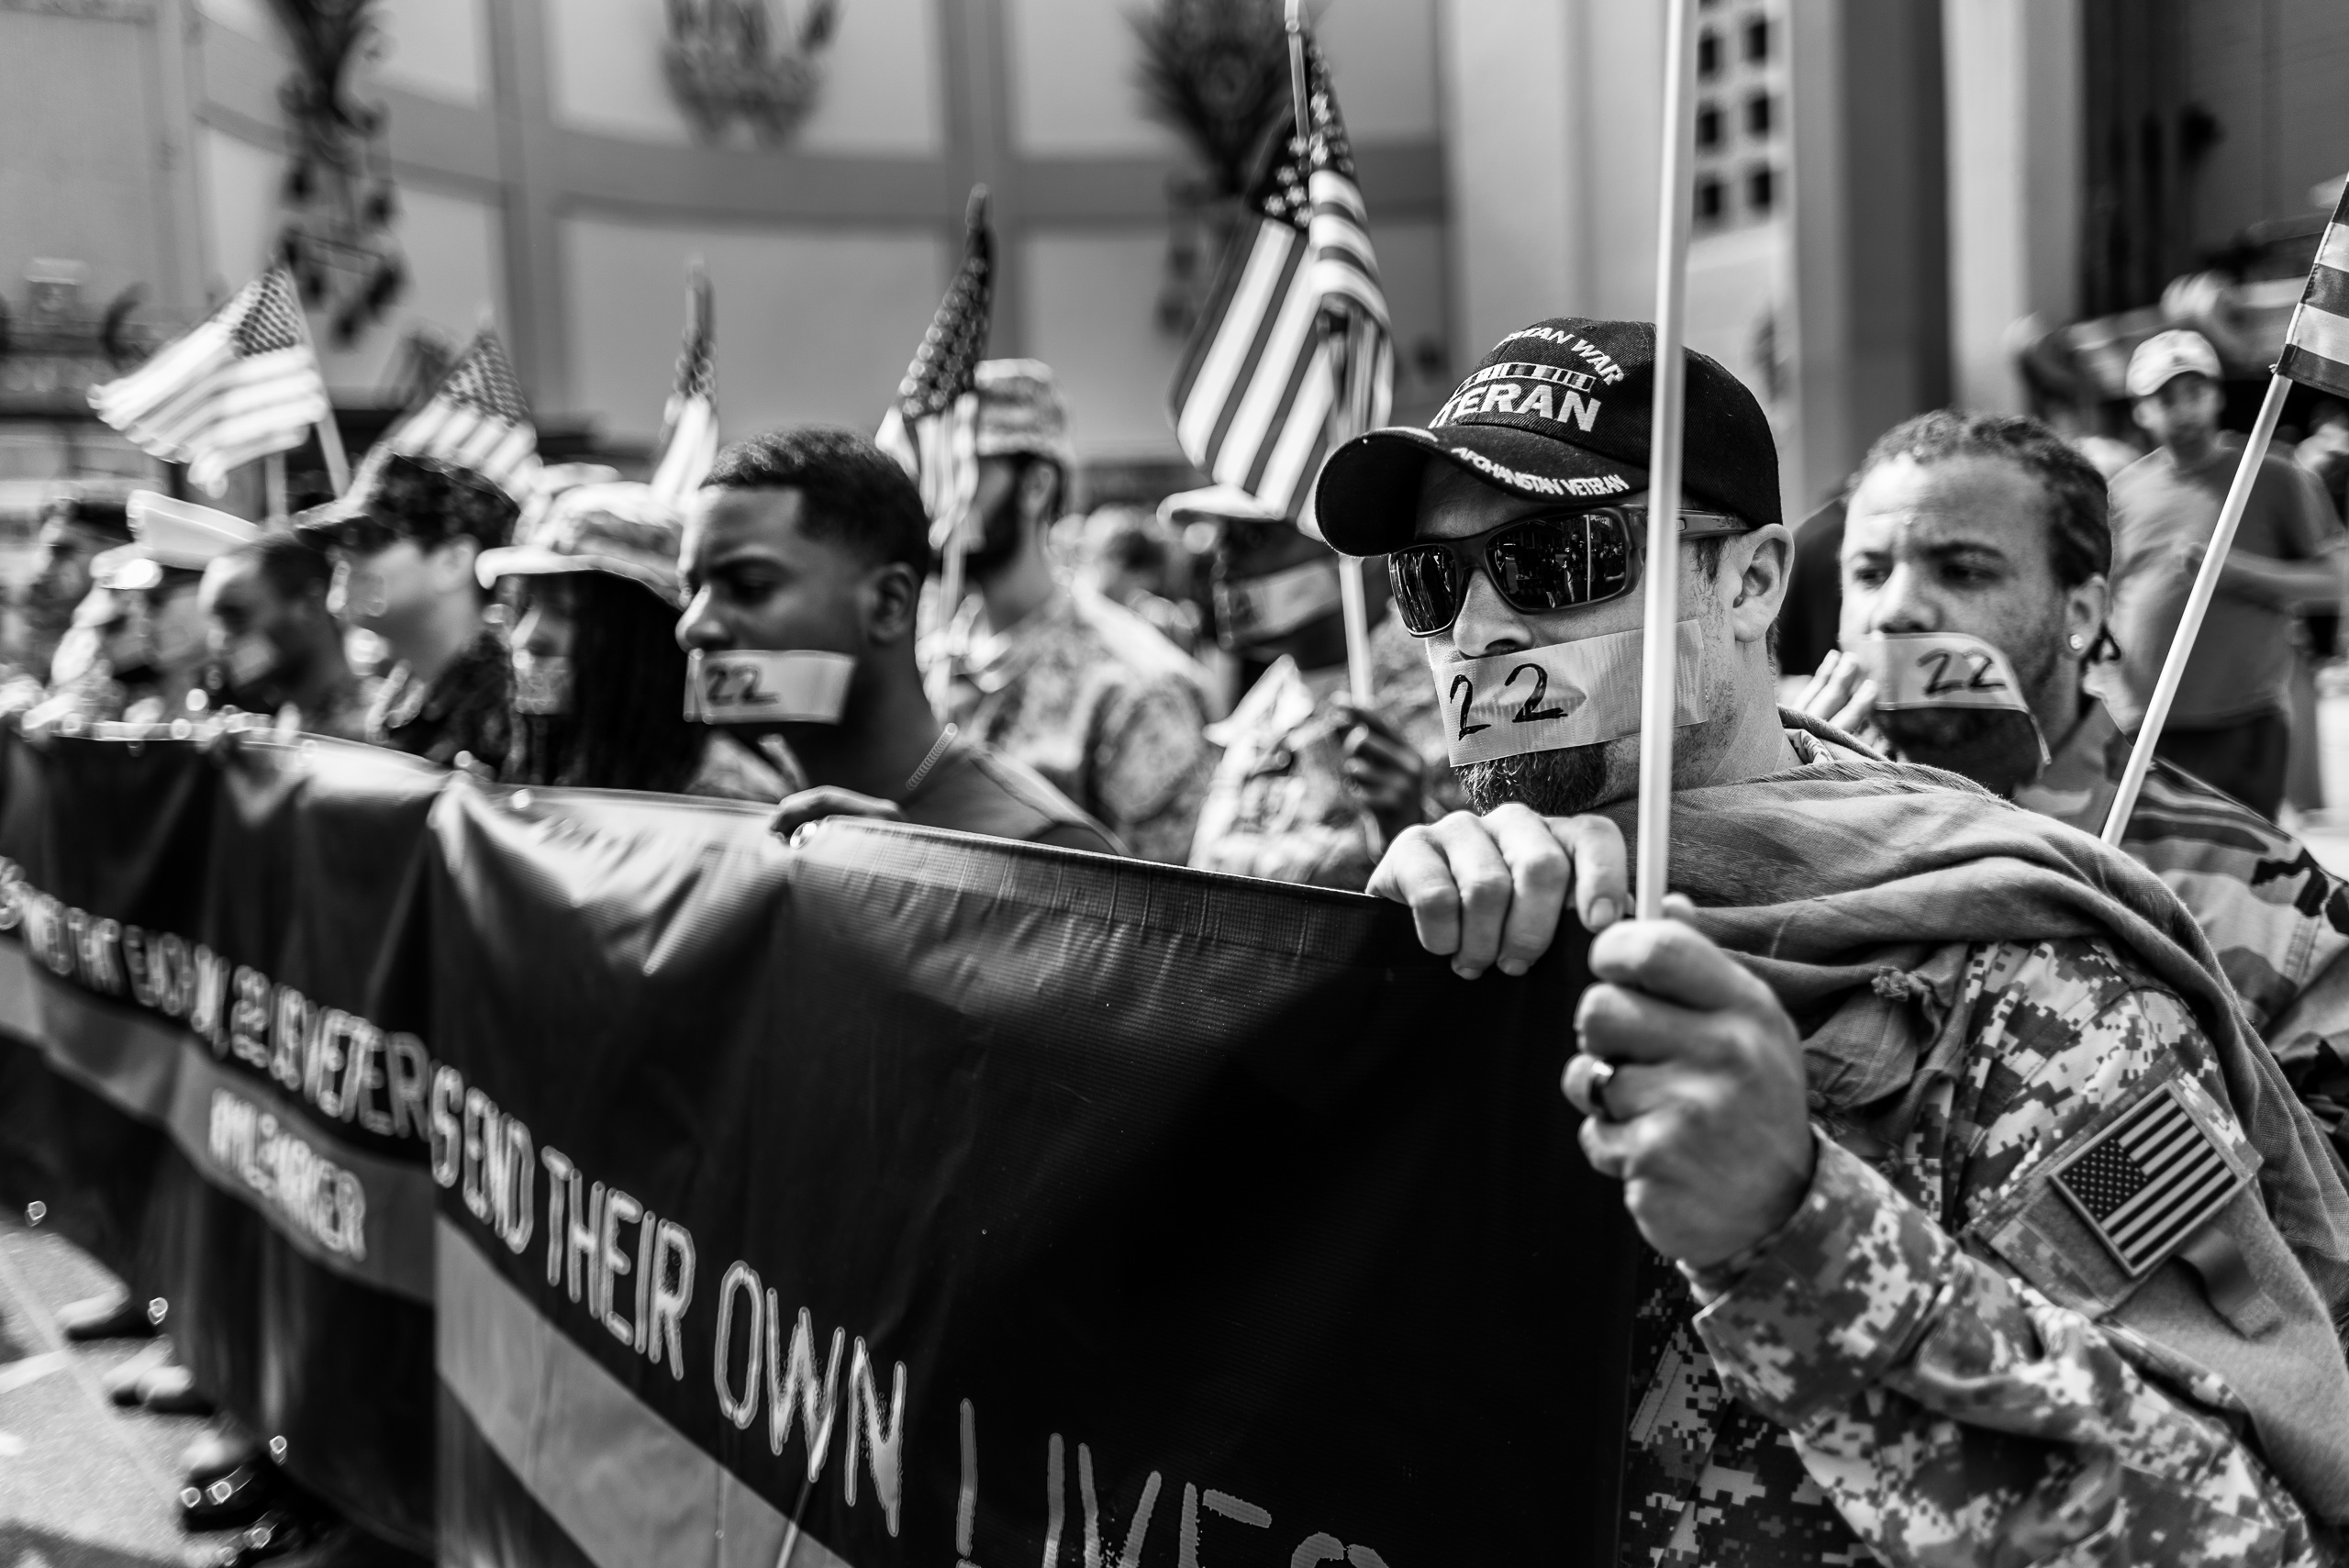 """over a dozen Unites States veterans from different branches stand dressed in their respective uniforms and with their mouths covered with duct tape bearing the number""""22"""" and together they hold a long banner reading """"It's estimated that each day, 22 US Veterans end their own lives"""". They stand in front of the Chinese Theater on Hollywood Blvd."""